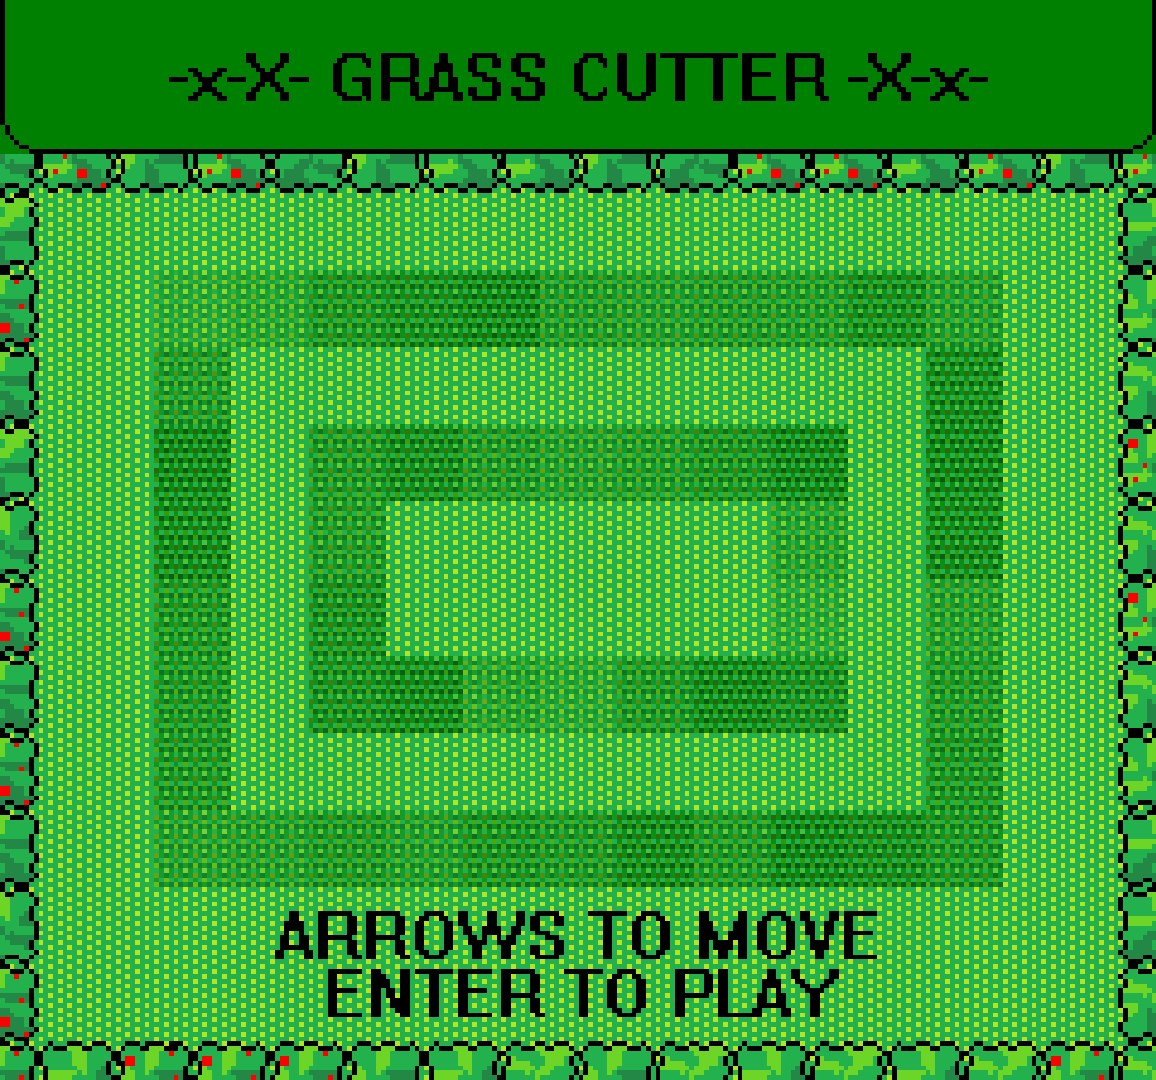 Grass Cutter - June 1st, 2012